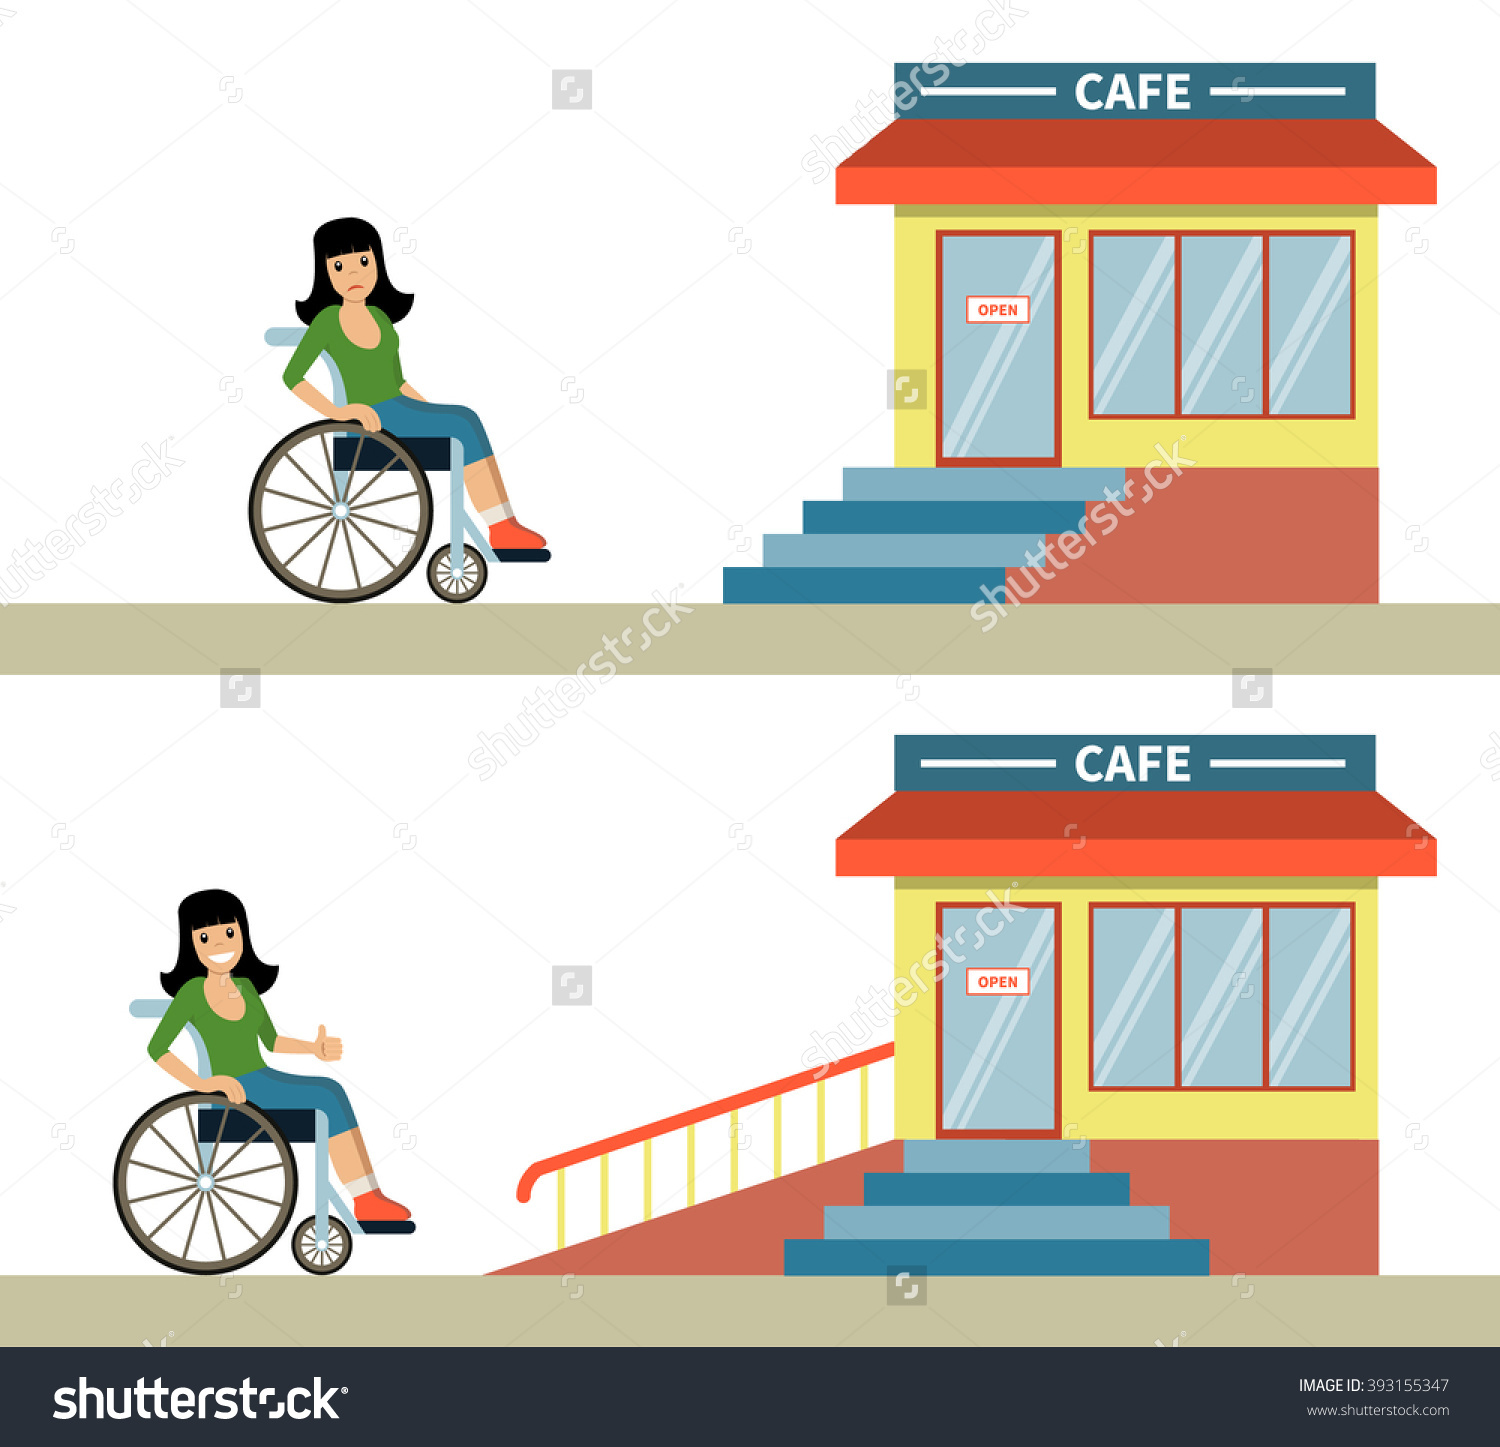 Young Woman Wheelchair Front Cafe Stairs Stock Vector 393155347.